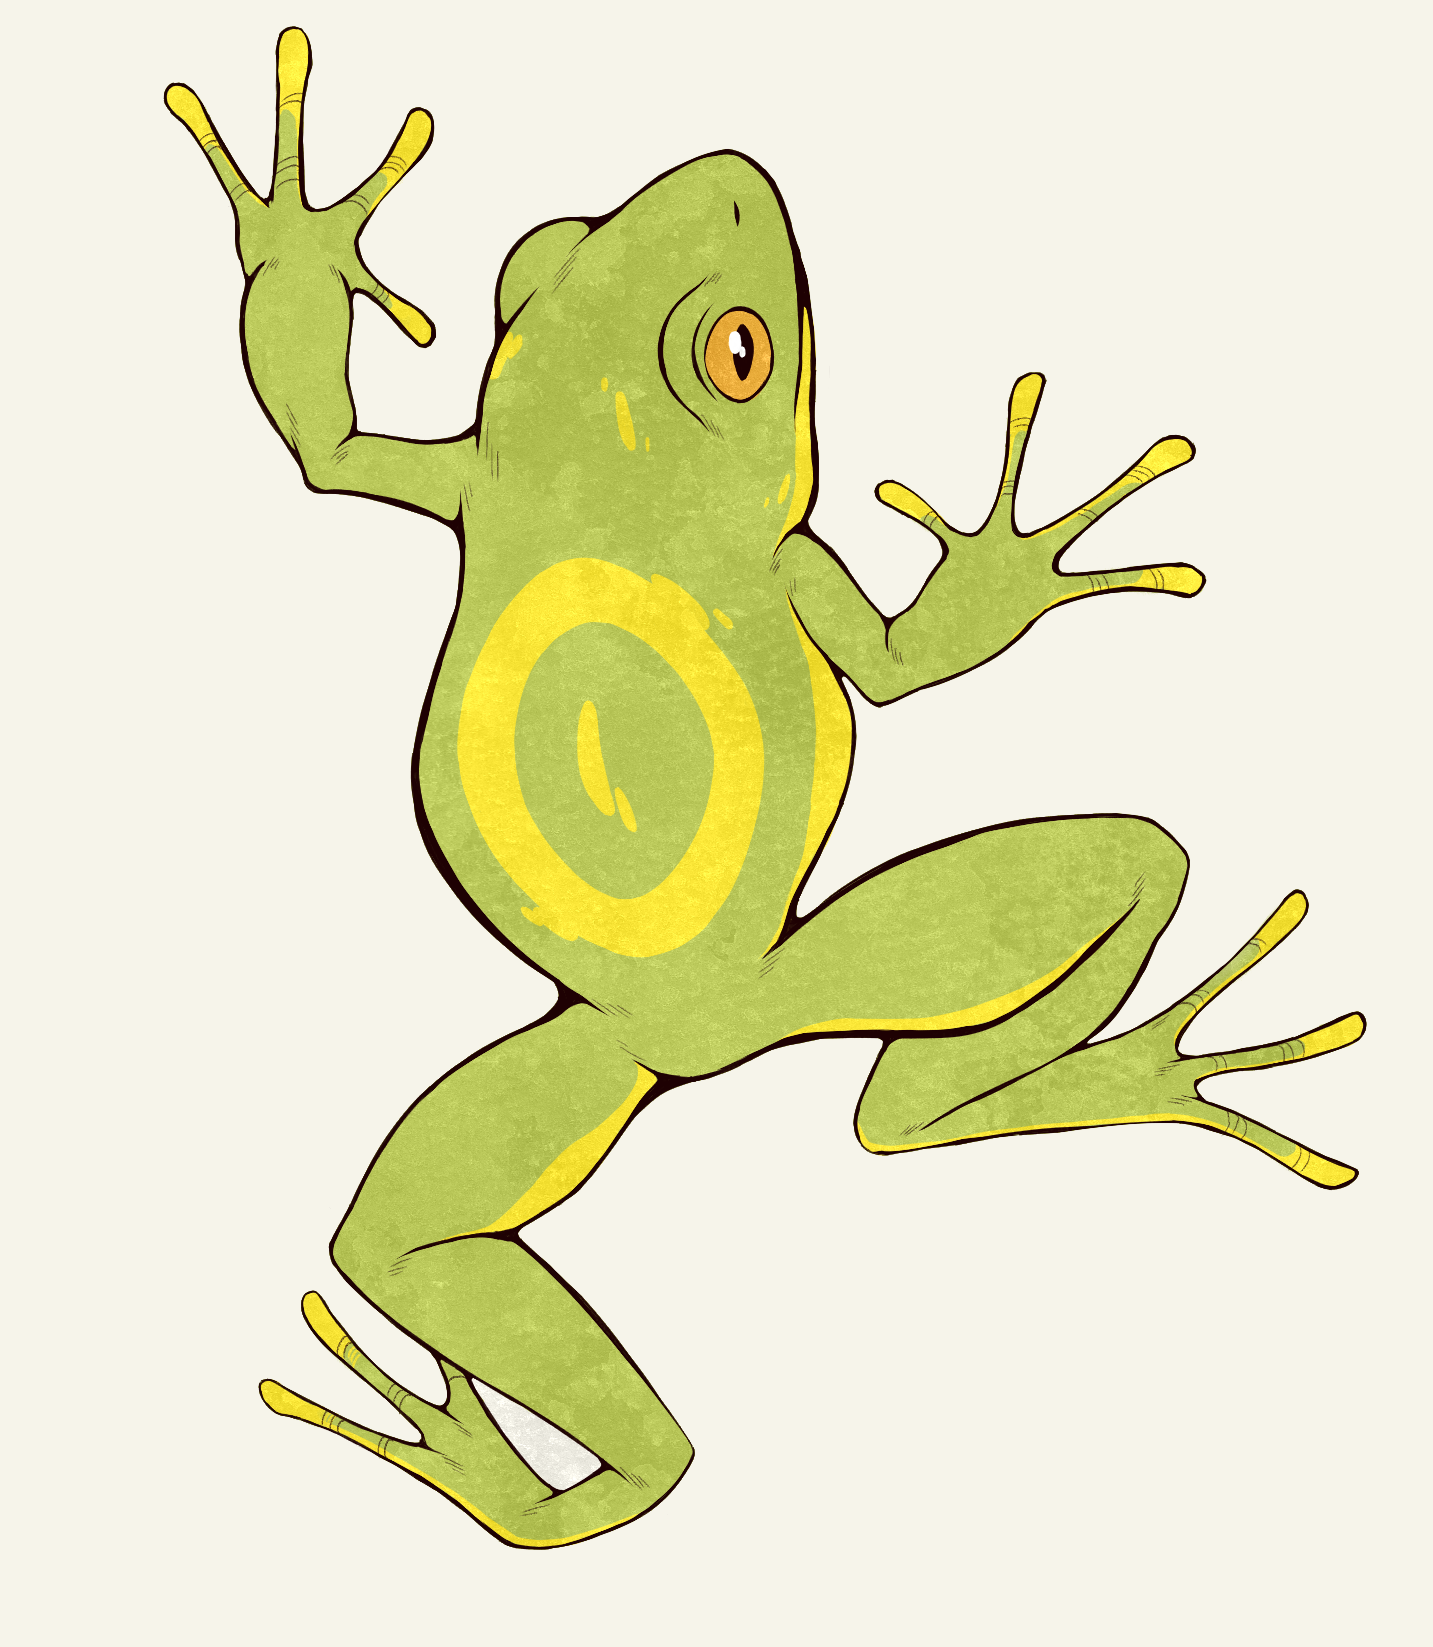 [COMMISSION] Frog 2